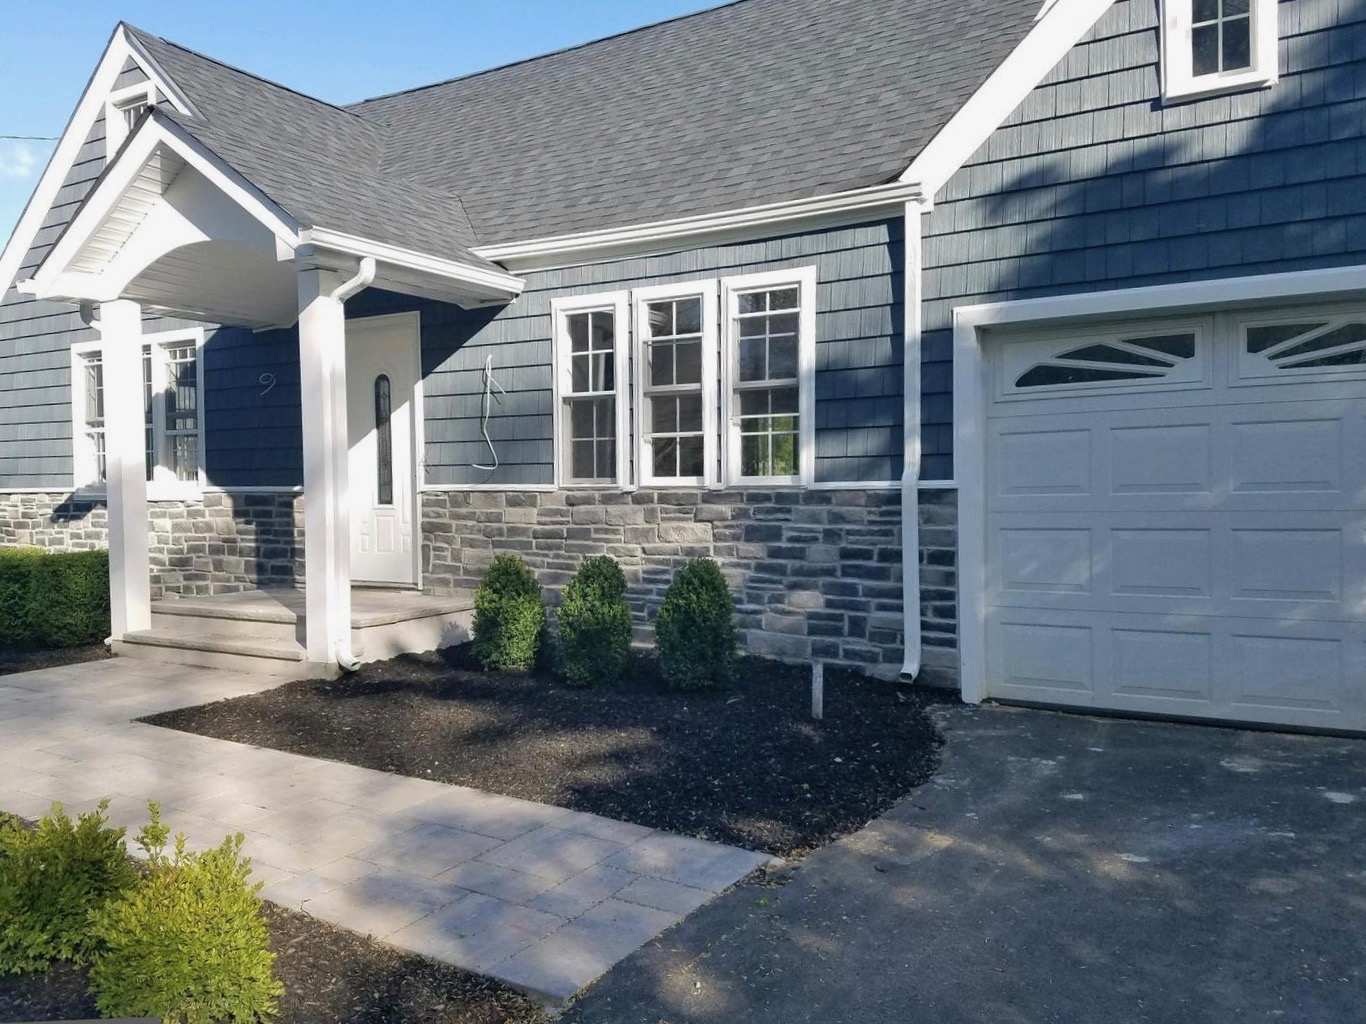 Single Family Homes for Sale at Cute as a Button with Loads of Curb Appeal 220 Pennington Road, Pennington, New Jersey 08534 United States